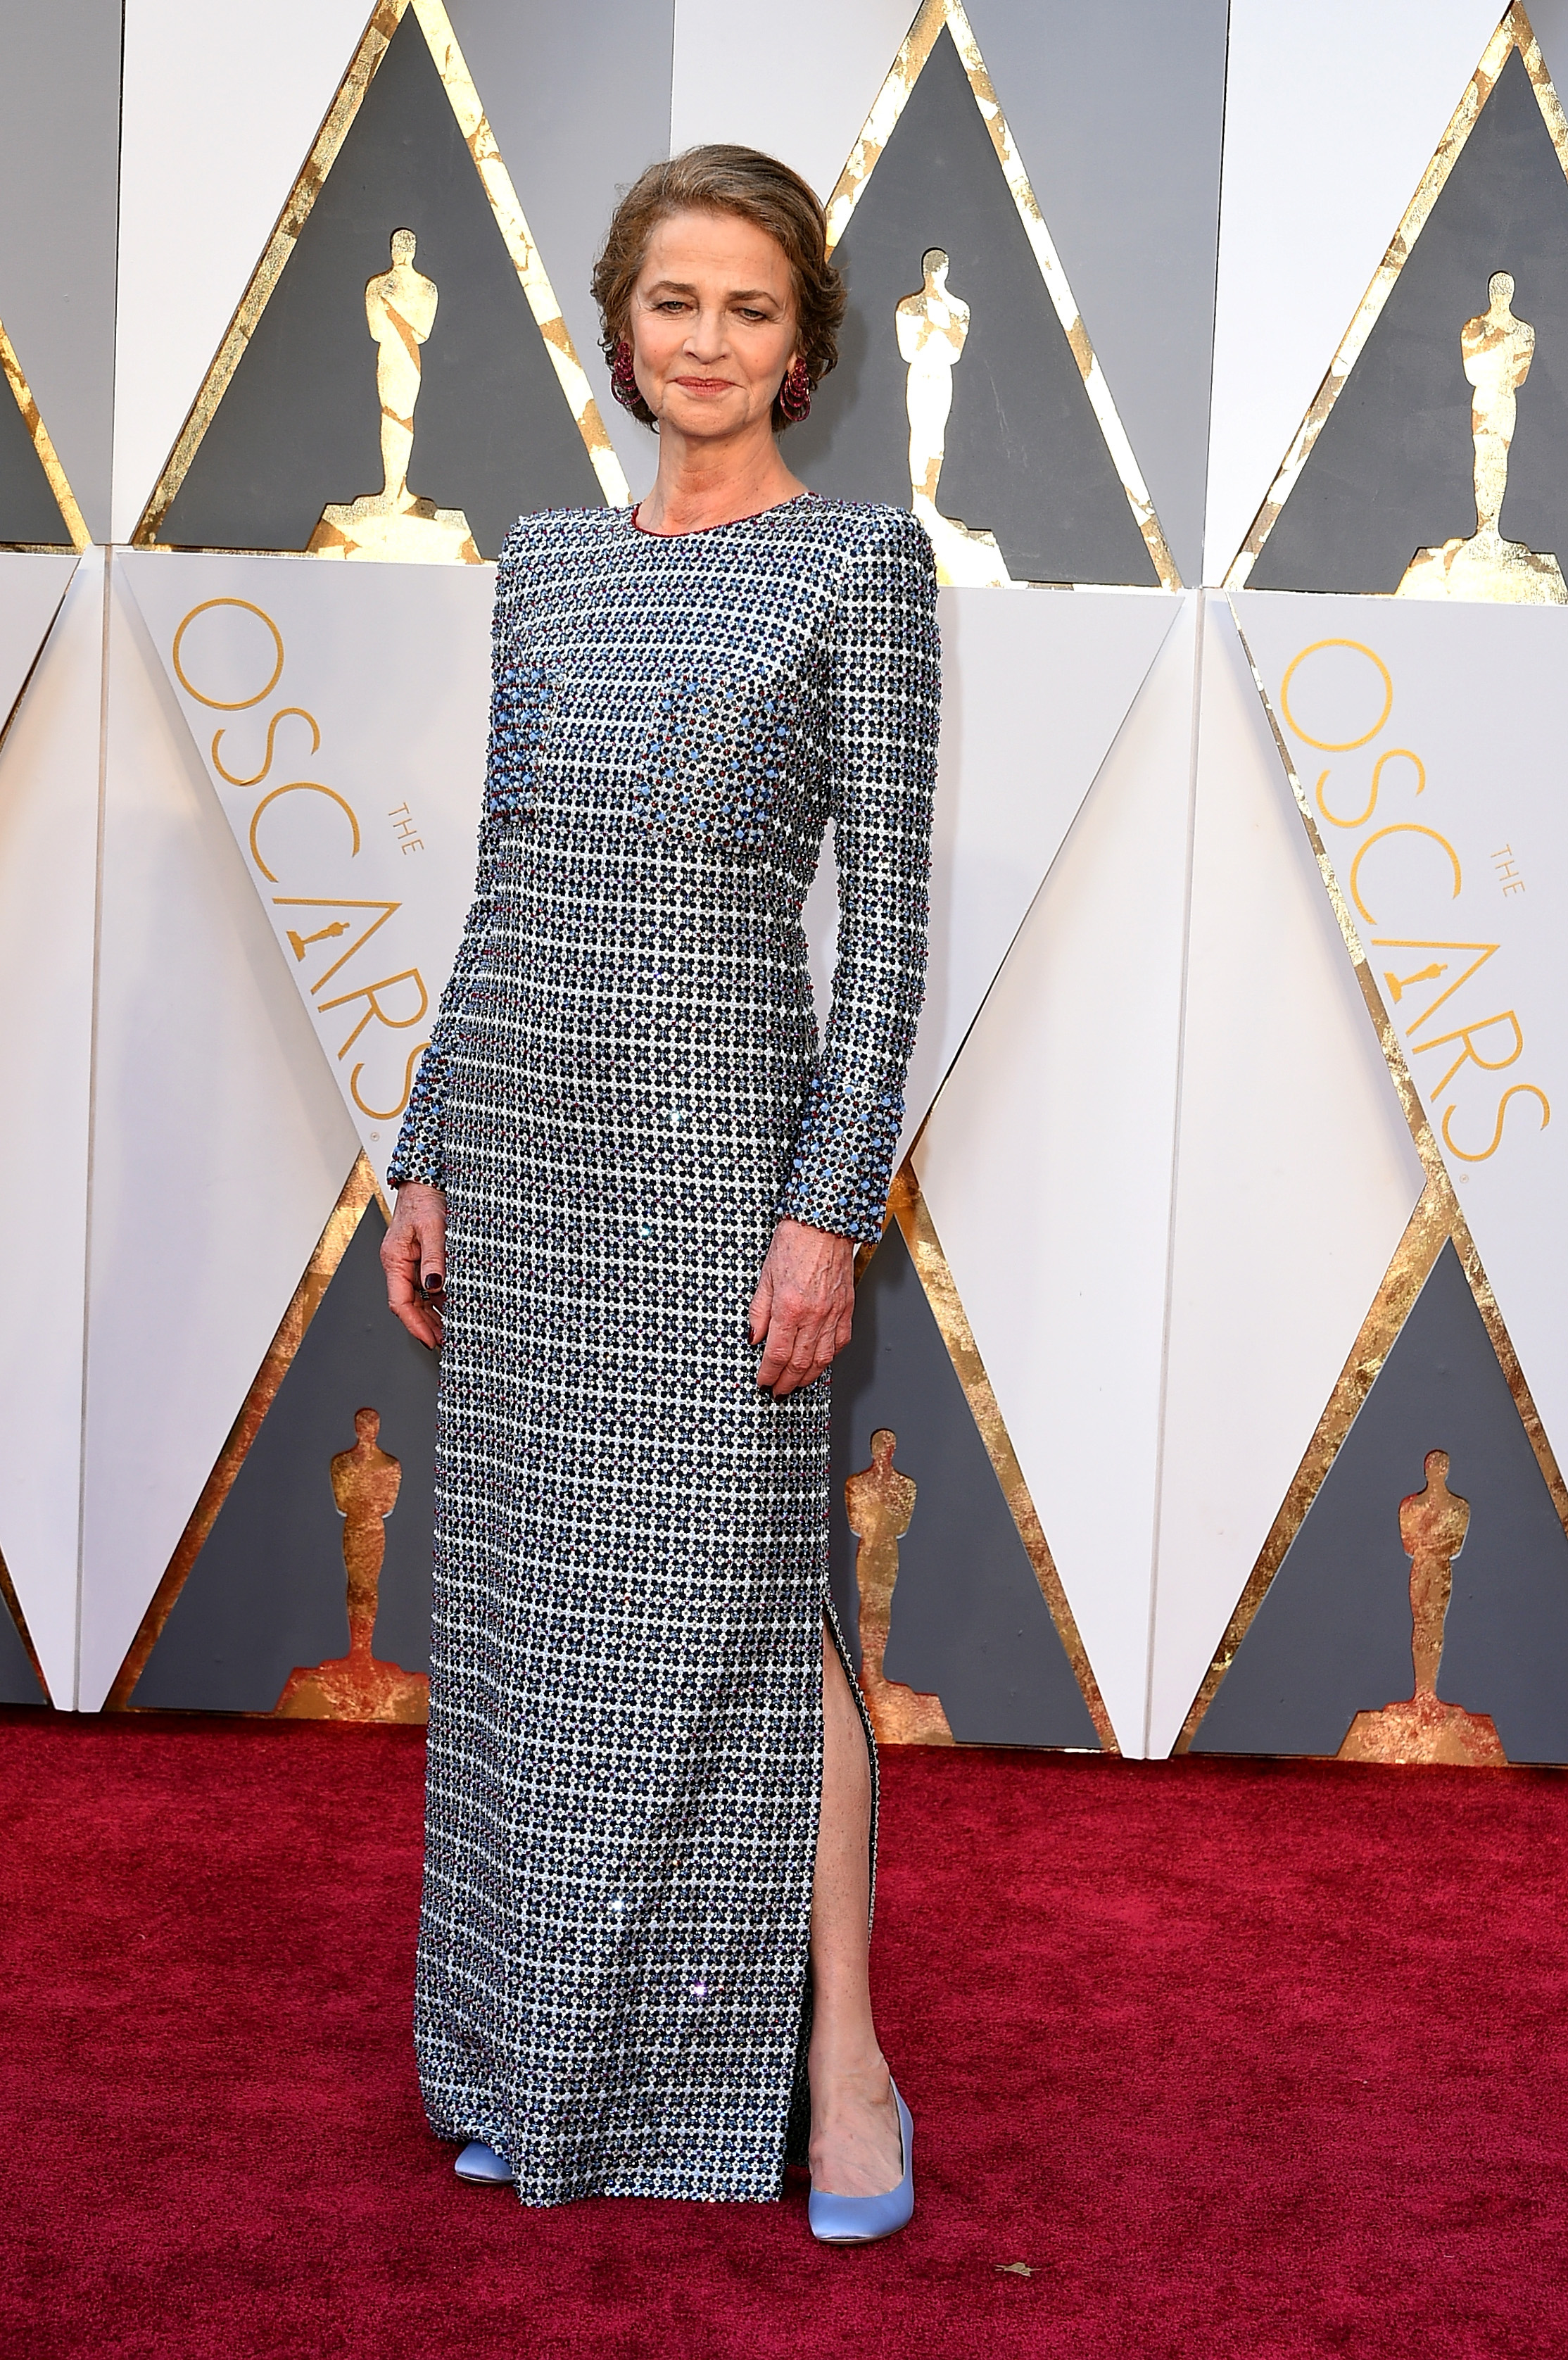 Charlotte Rampling attends the 88th Annual Academy Awards on Feb. 28, 2016 in Hollywood, Calif.